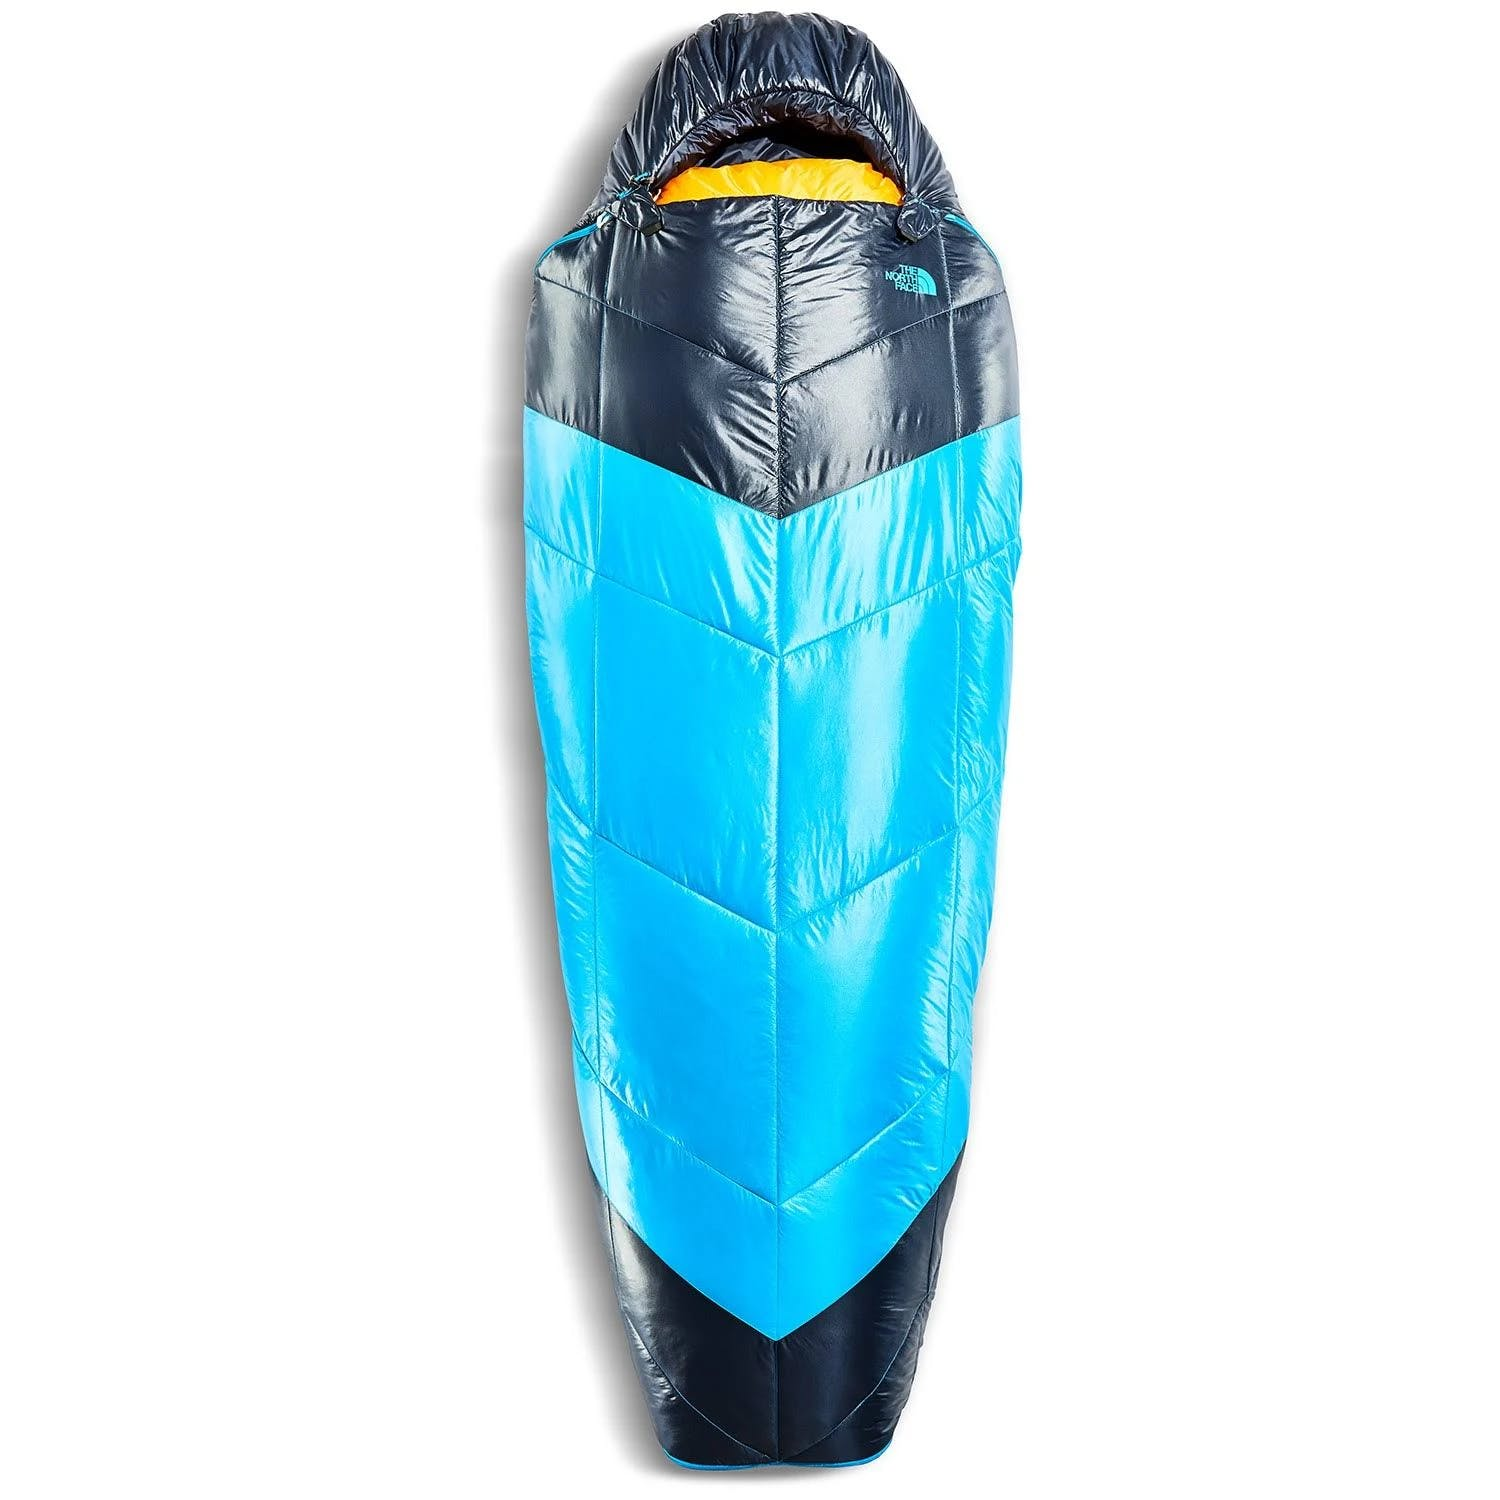 The North Face The One Bag Sleeping Bag: Hyper Blue